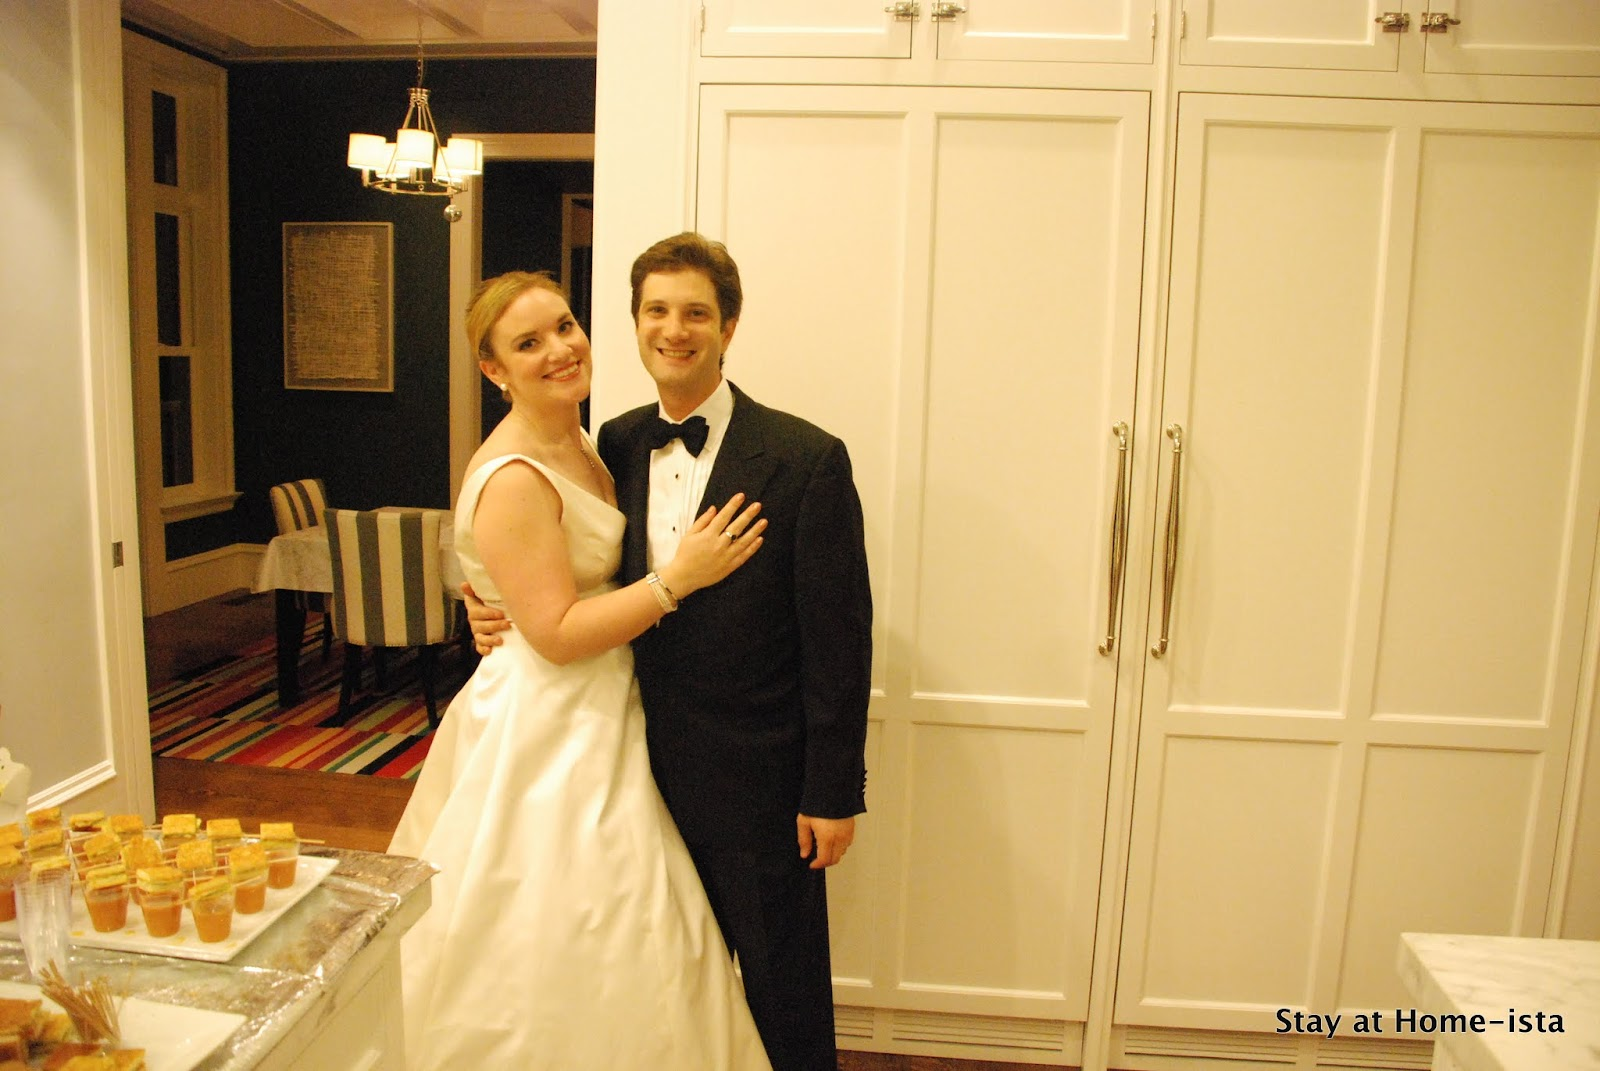 Stay at home ista wear your wedding dress an anniversary party